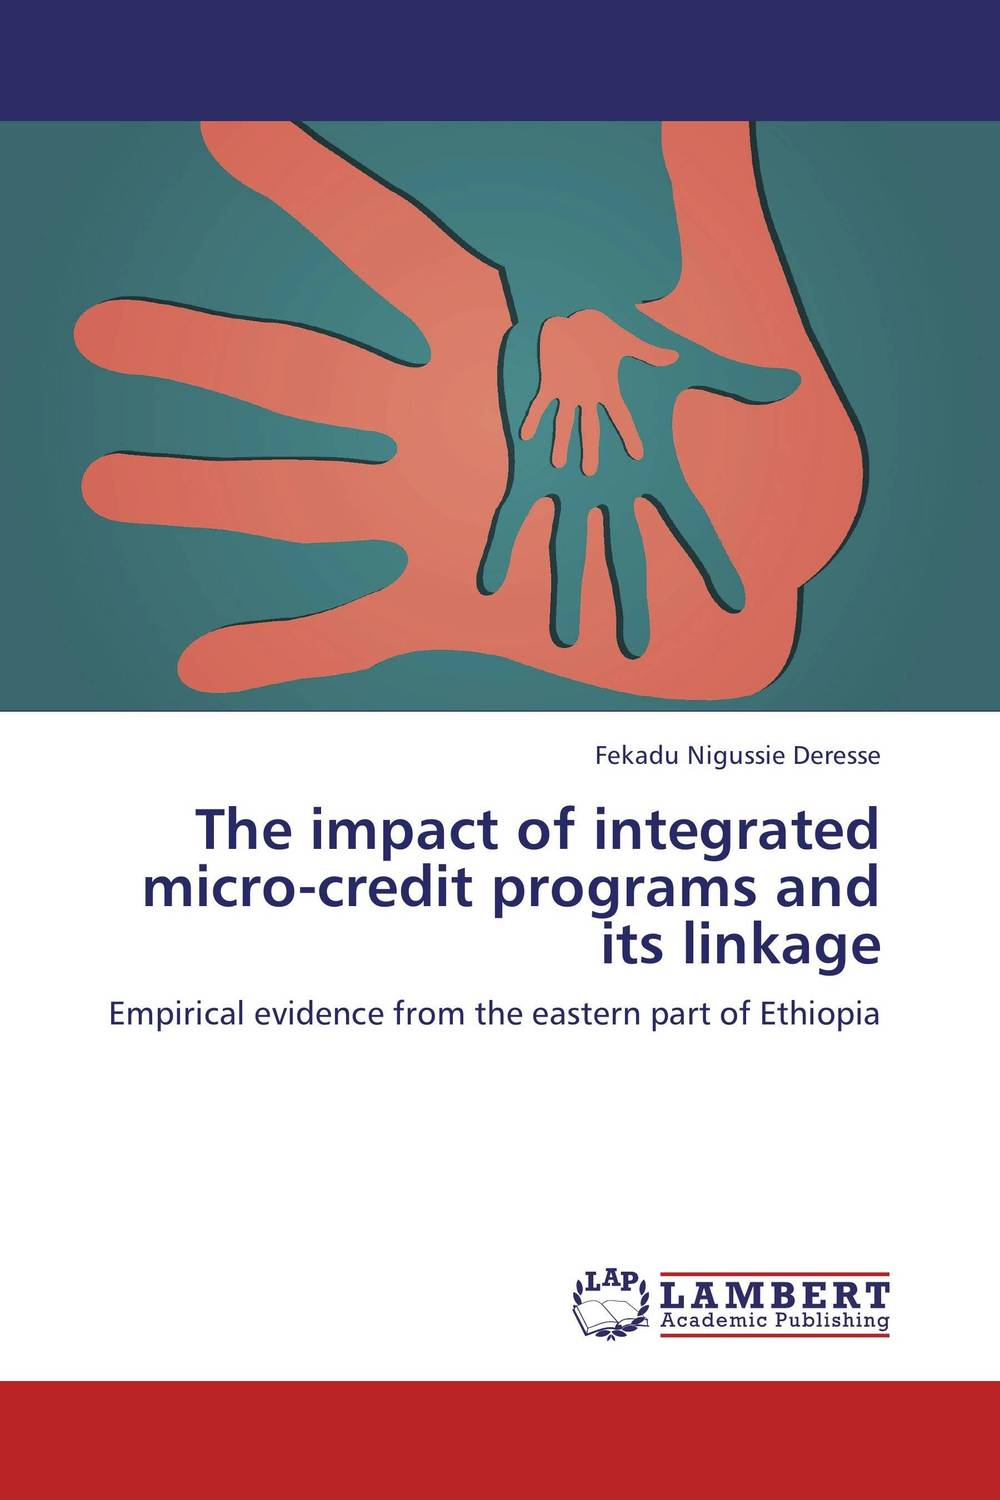 The impact of integrated micro-credit programs and its linkage programs in aid of the poor sixth edition